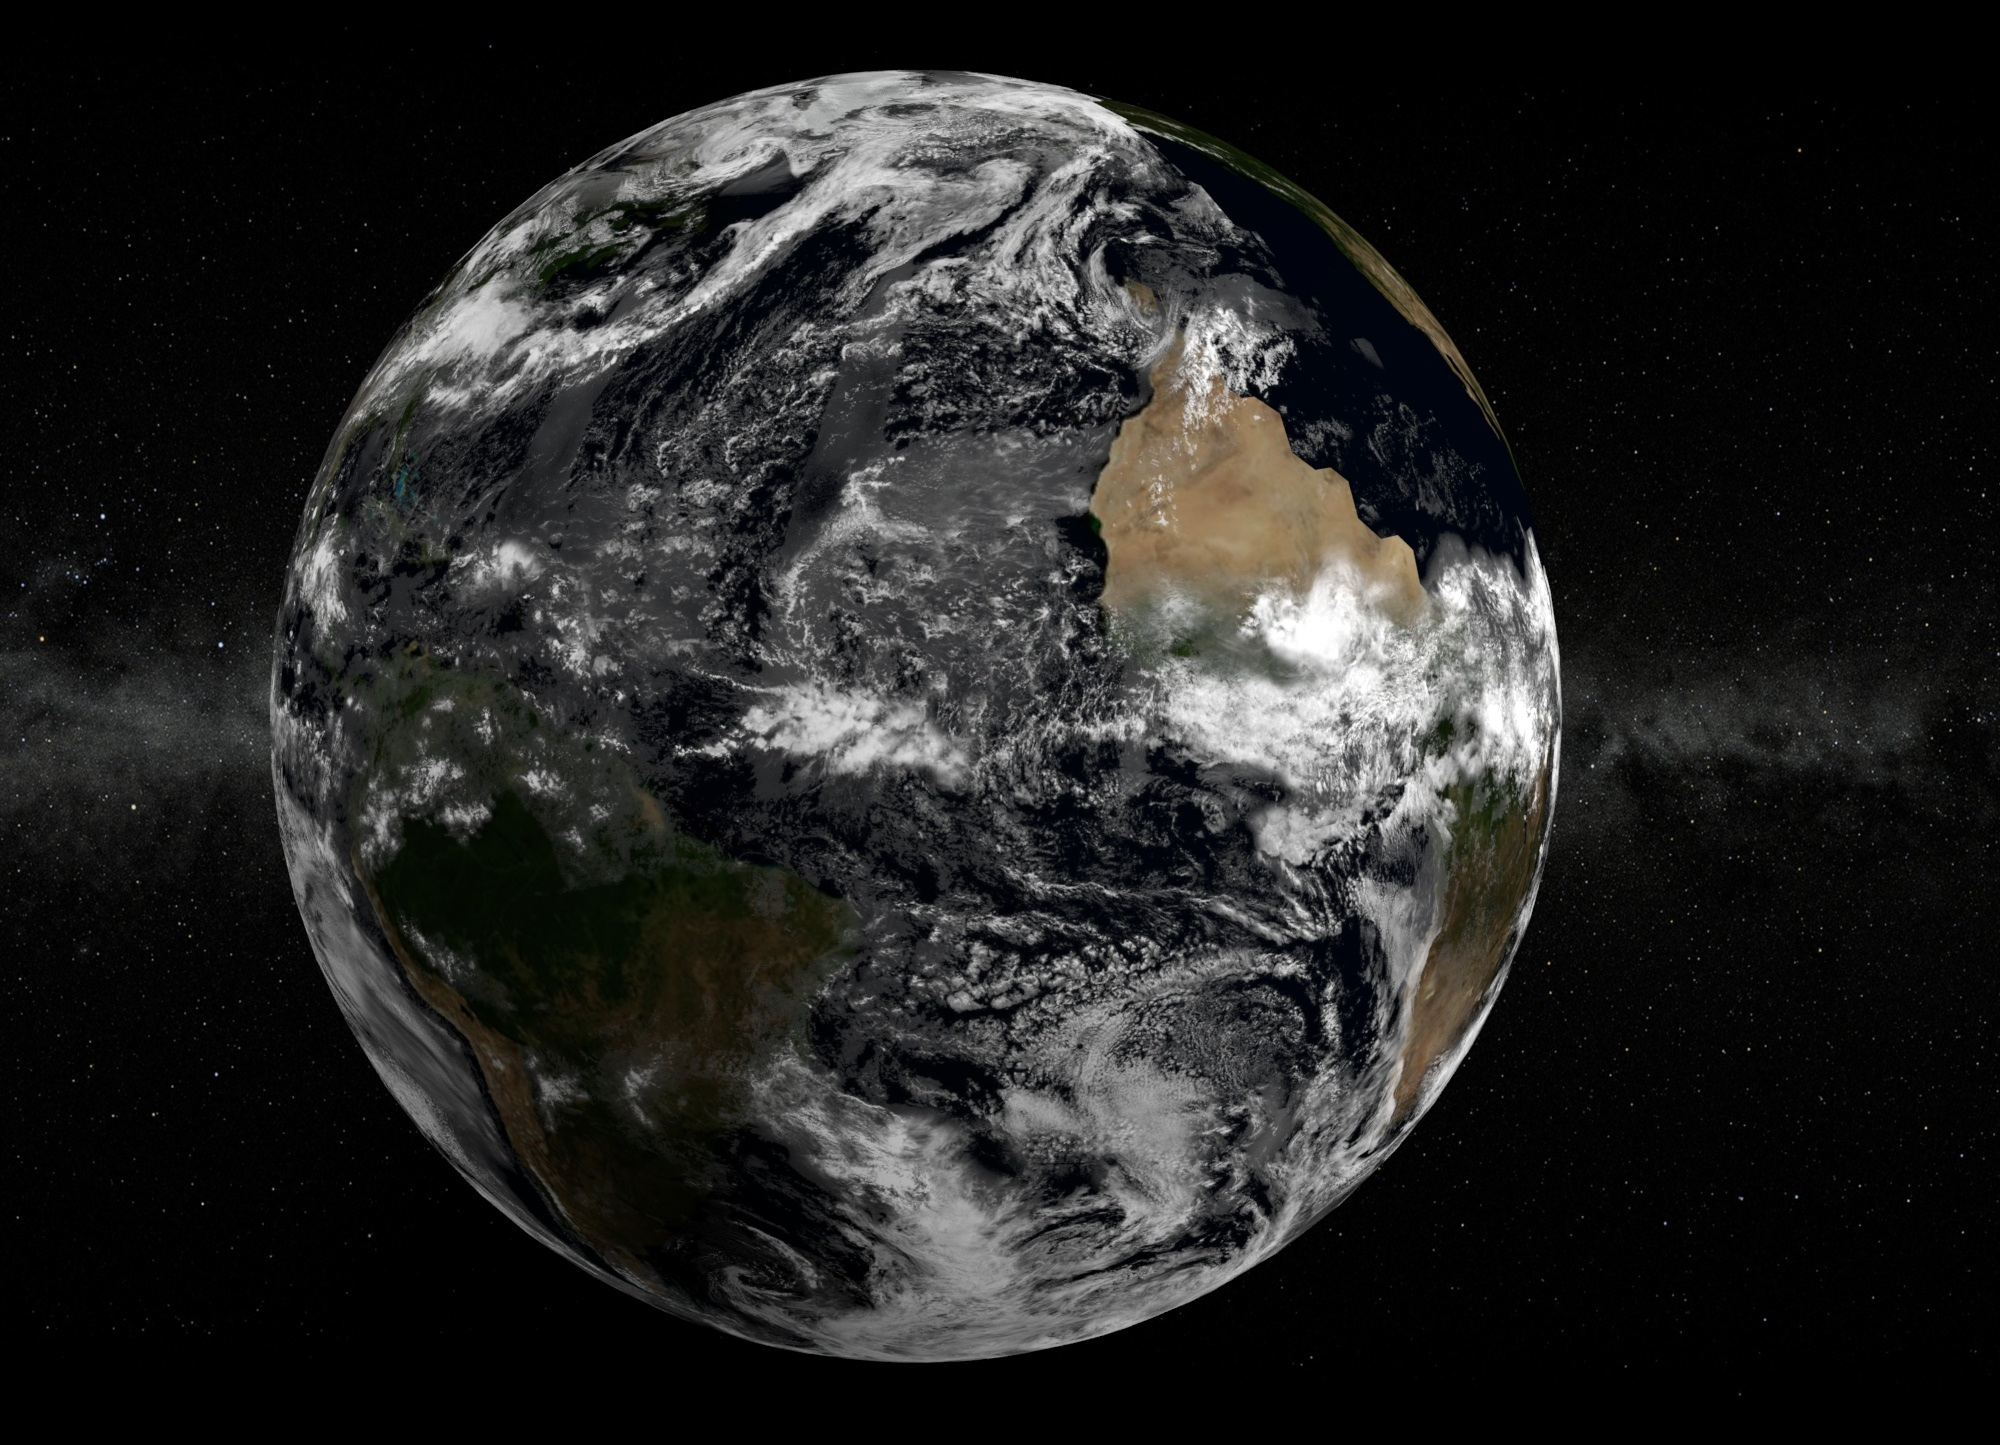 Earth Space Wallpaper Black And White Free Image